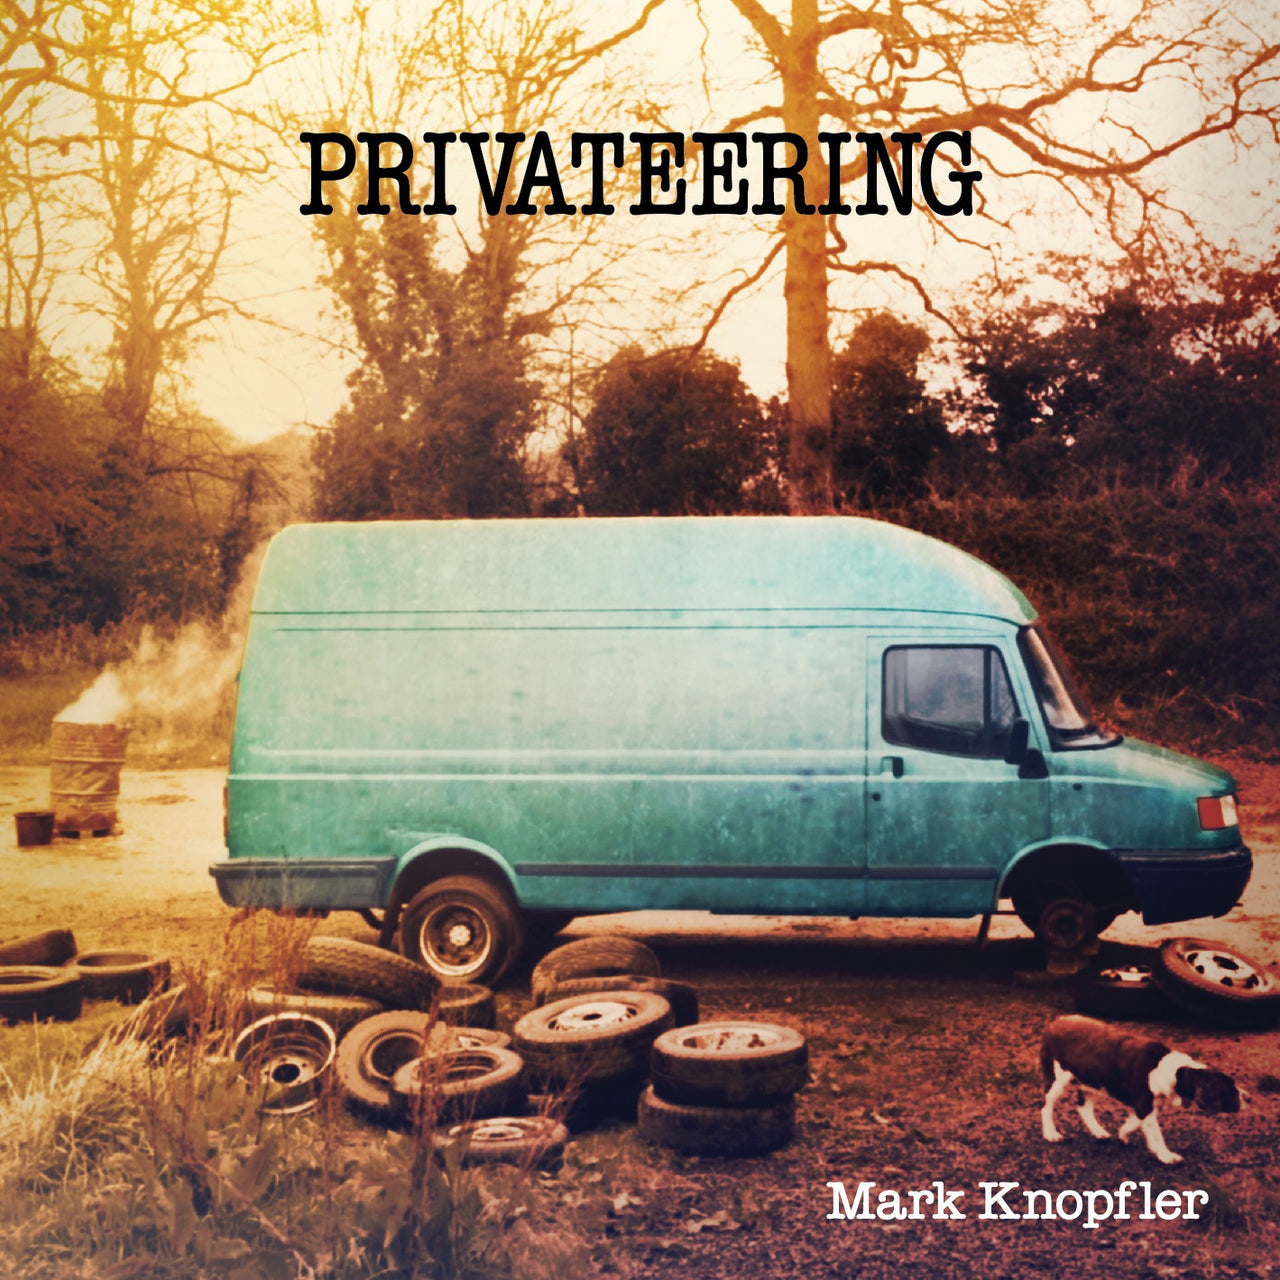 Knopfler, Mark : Privateering  CD